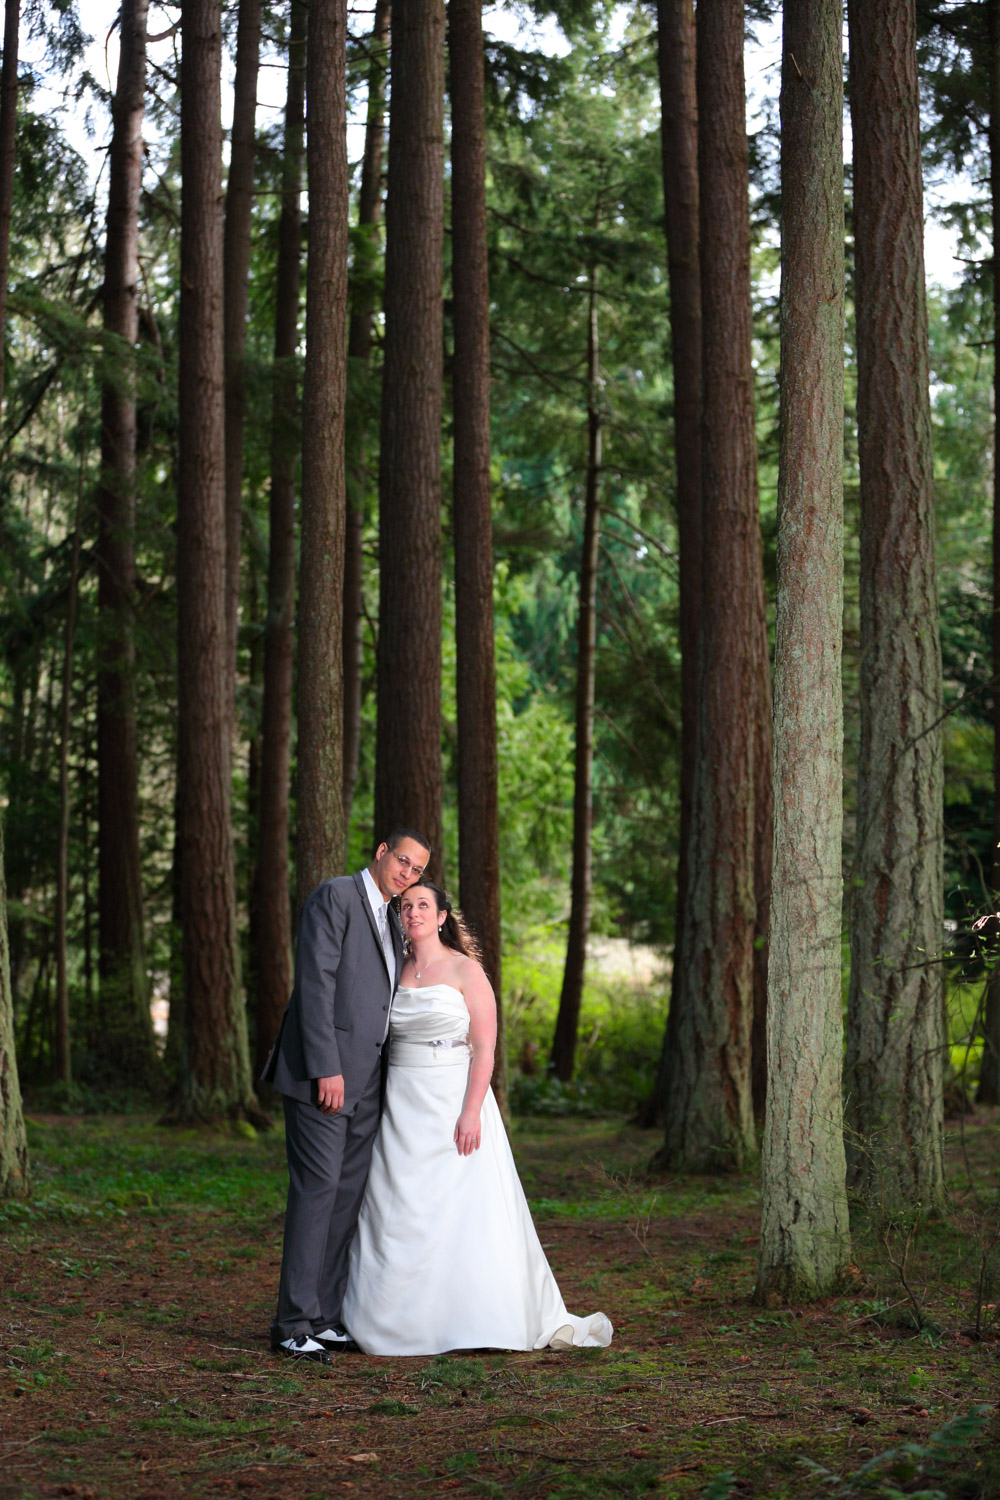 Wedding+Photos+Memorial+State+Park+Kitsap+Washington24.jpg